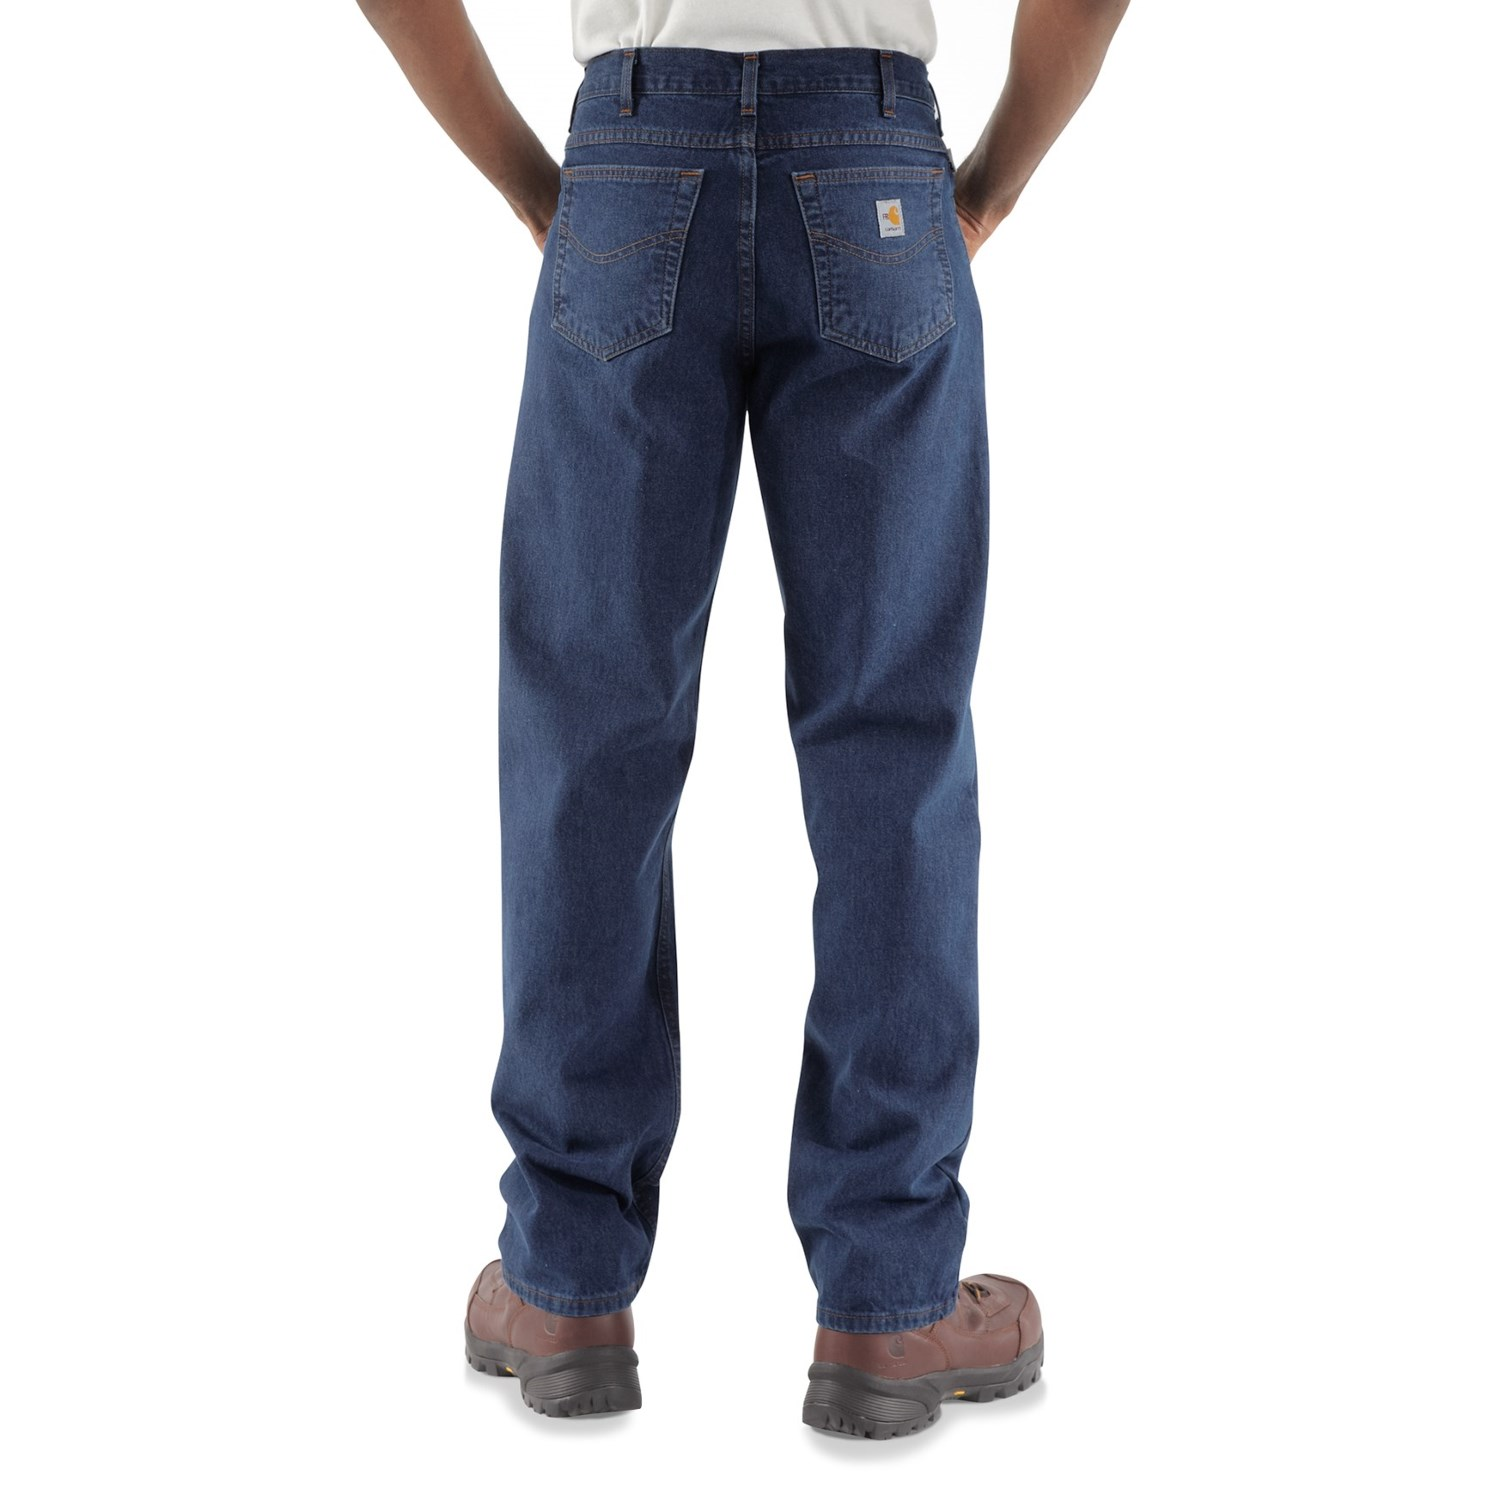 Carhartt Fr Flame Resistant Jeans For Men